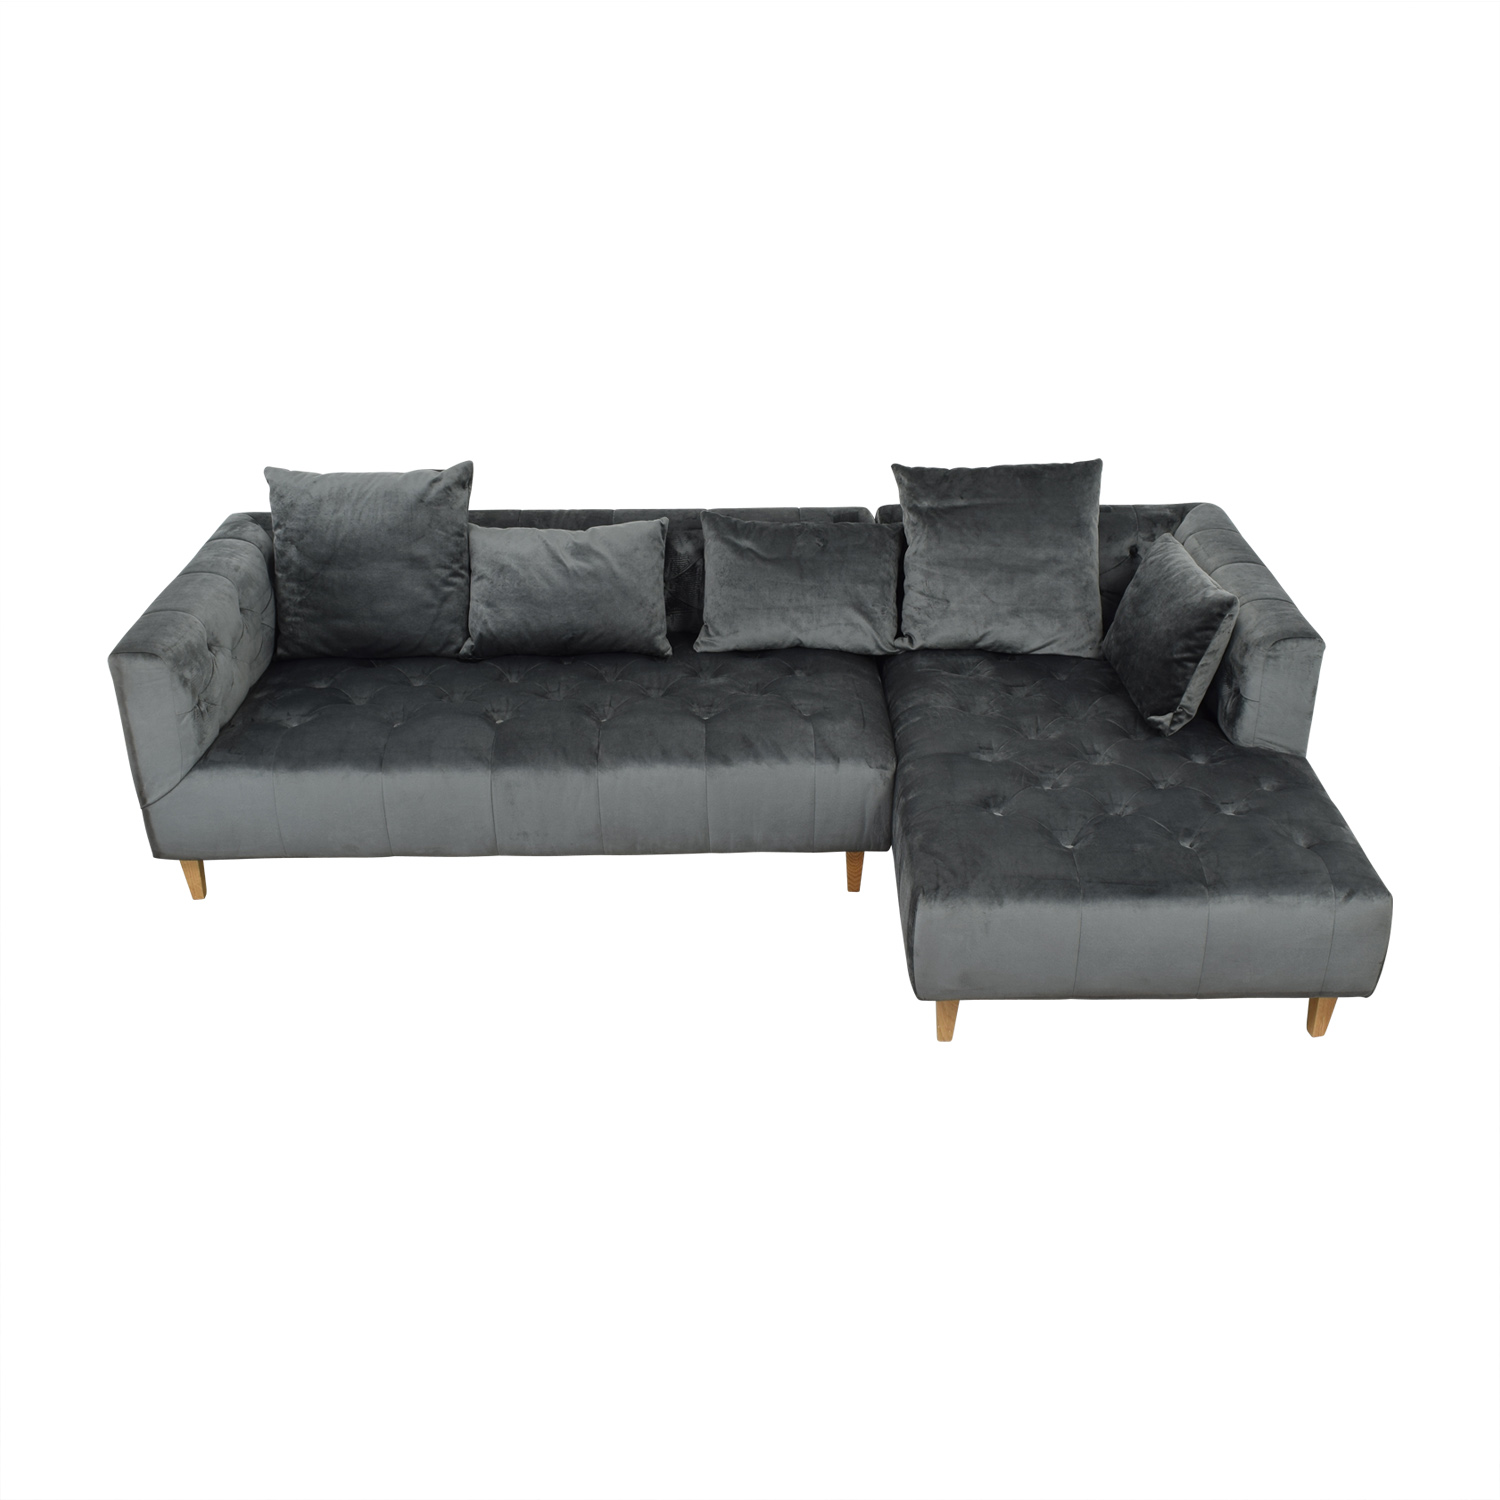 Ms. Chesterfield Right Chaise Sectional Sofas